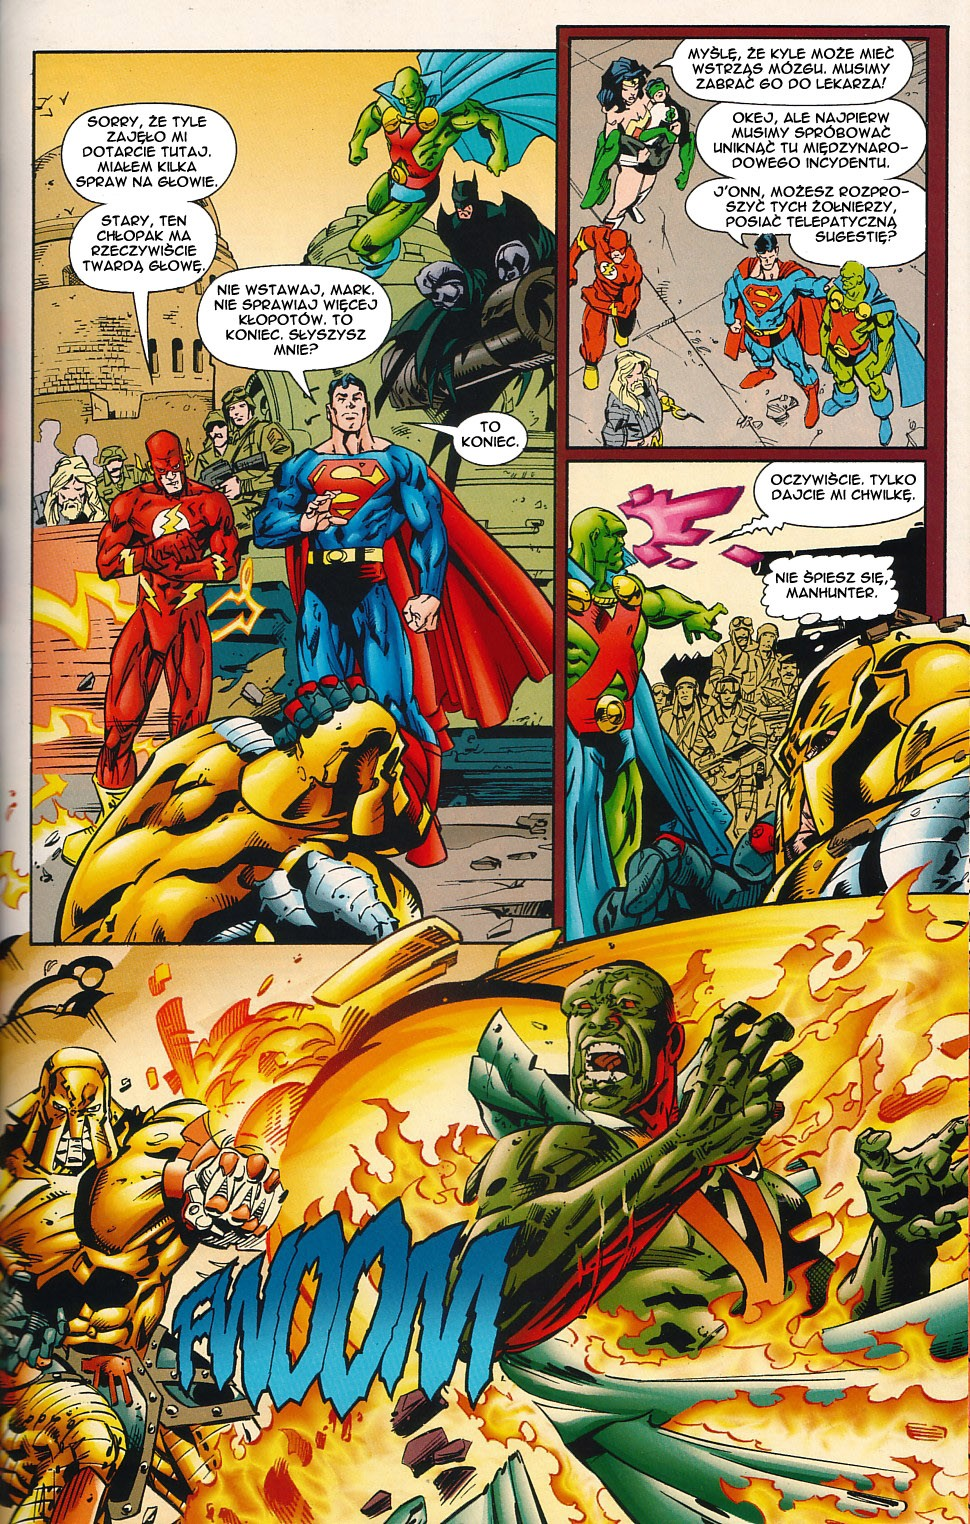 Read online JLA Superpower comic -  Issue # Full - 53